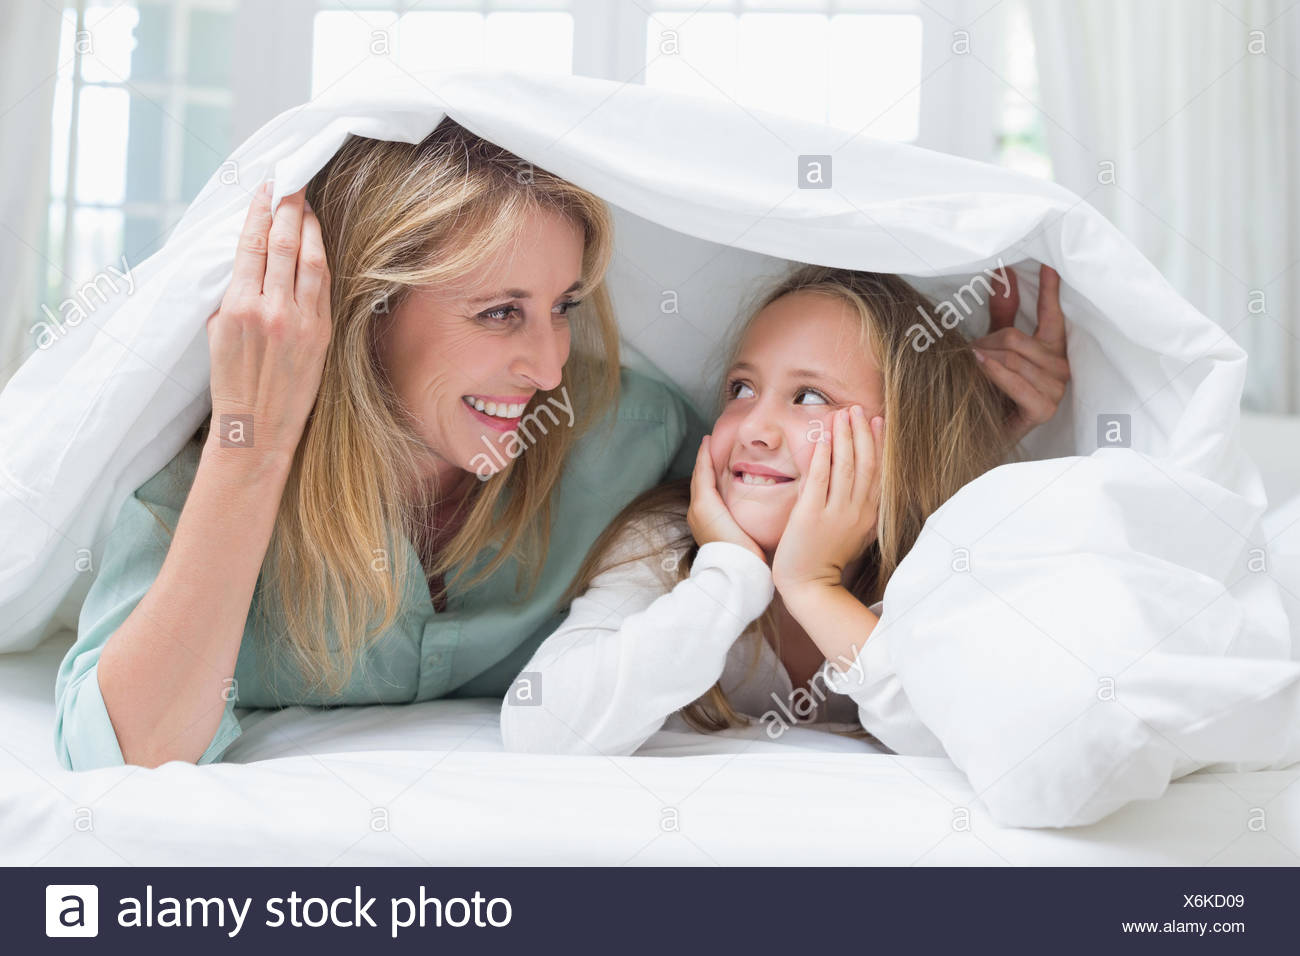 Mother and daughter looking at each other under the duvet - Stock Image